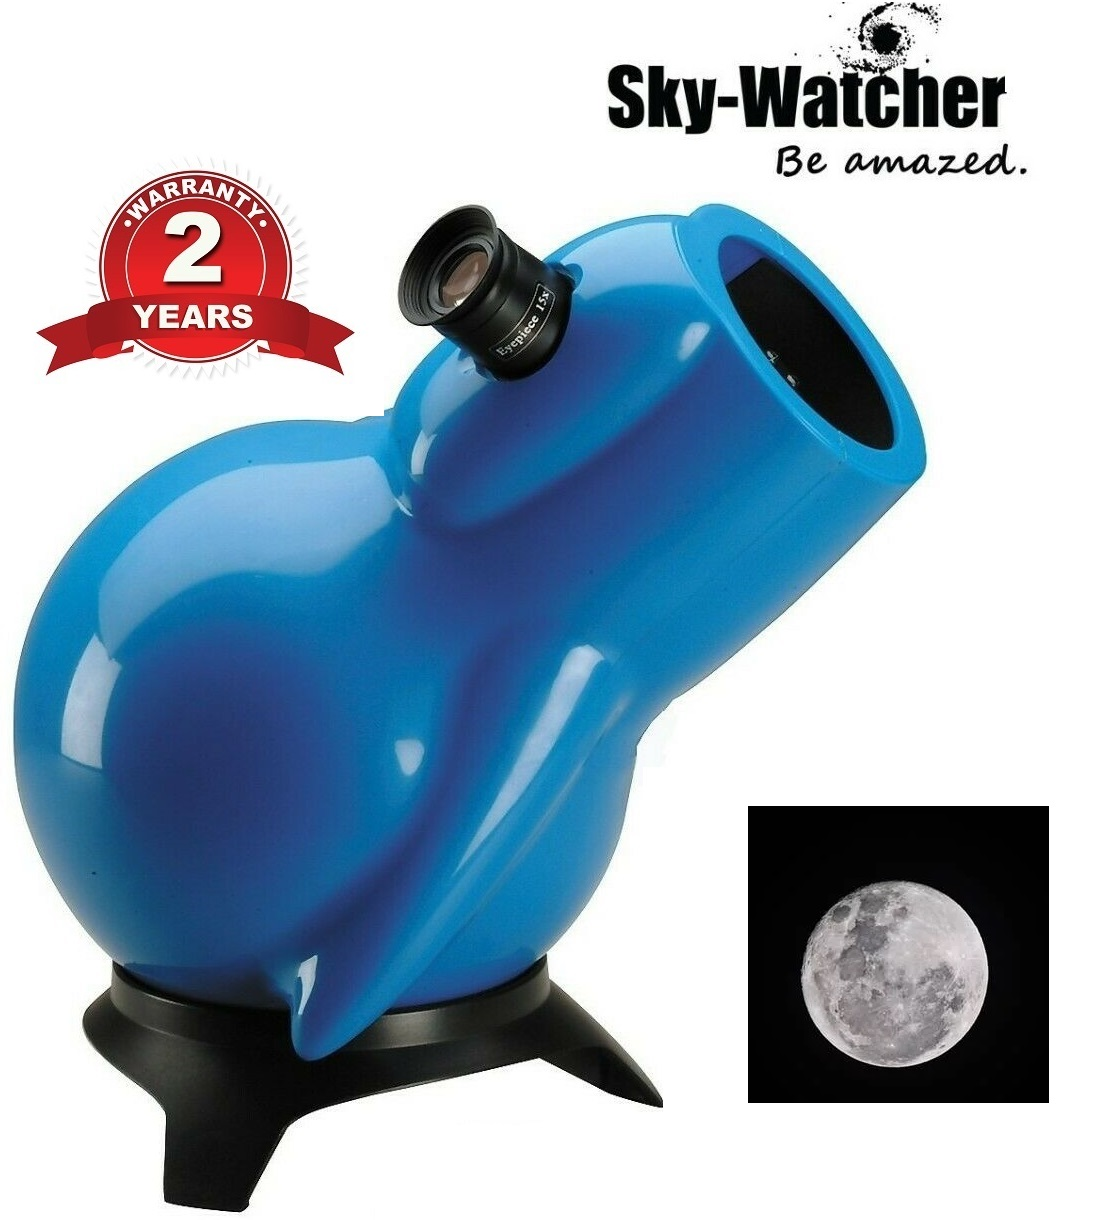 Skywatcher Infinity-76P Children Parabolic Reflector Telescope